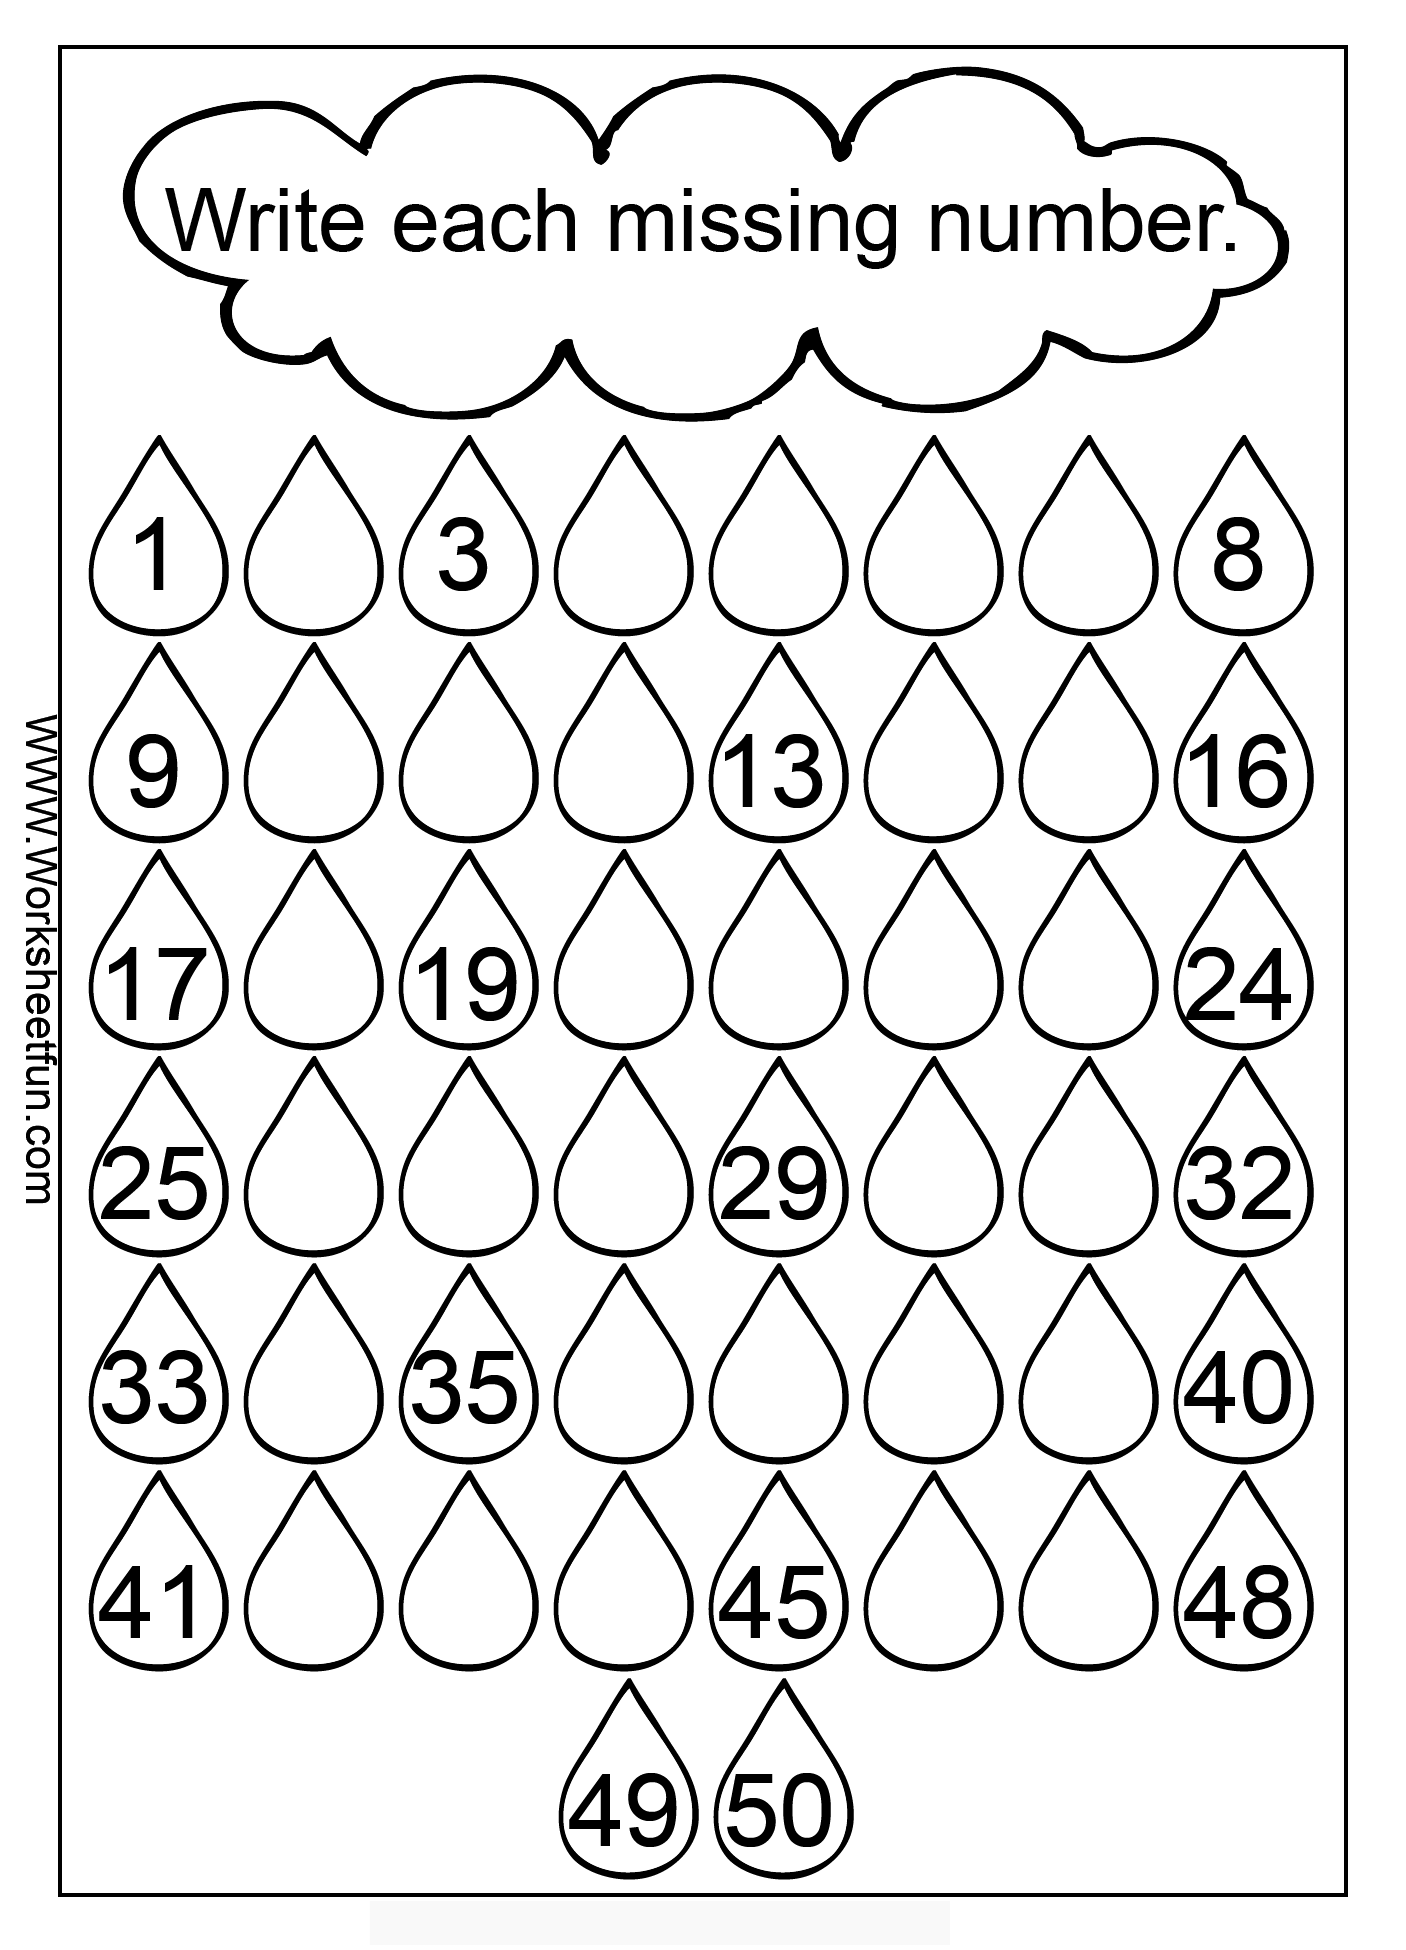 Fillin the Missing Numbers Worksheet – Math Worksheets for Elementary